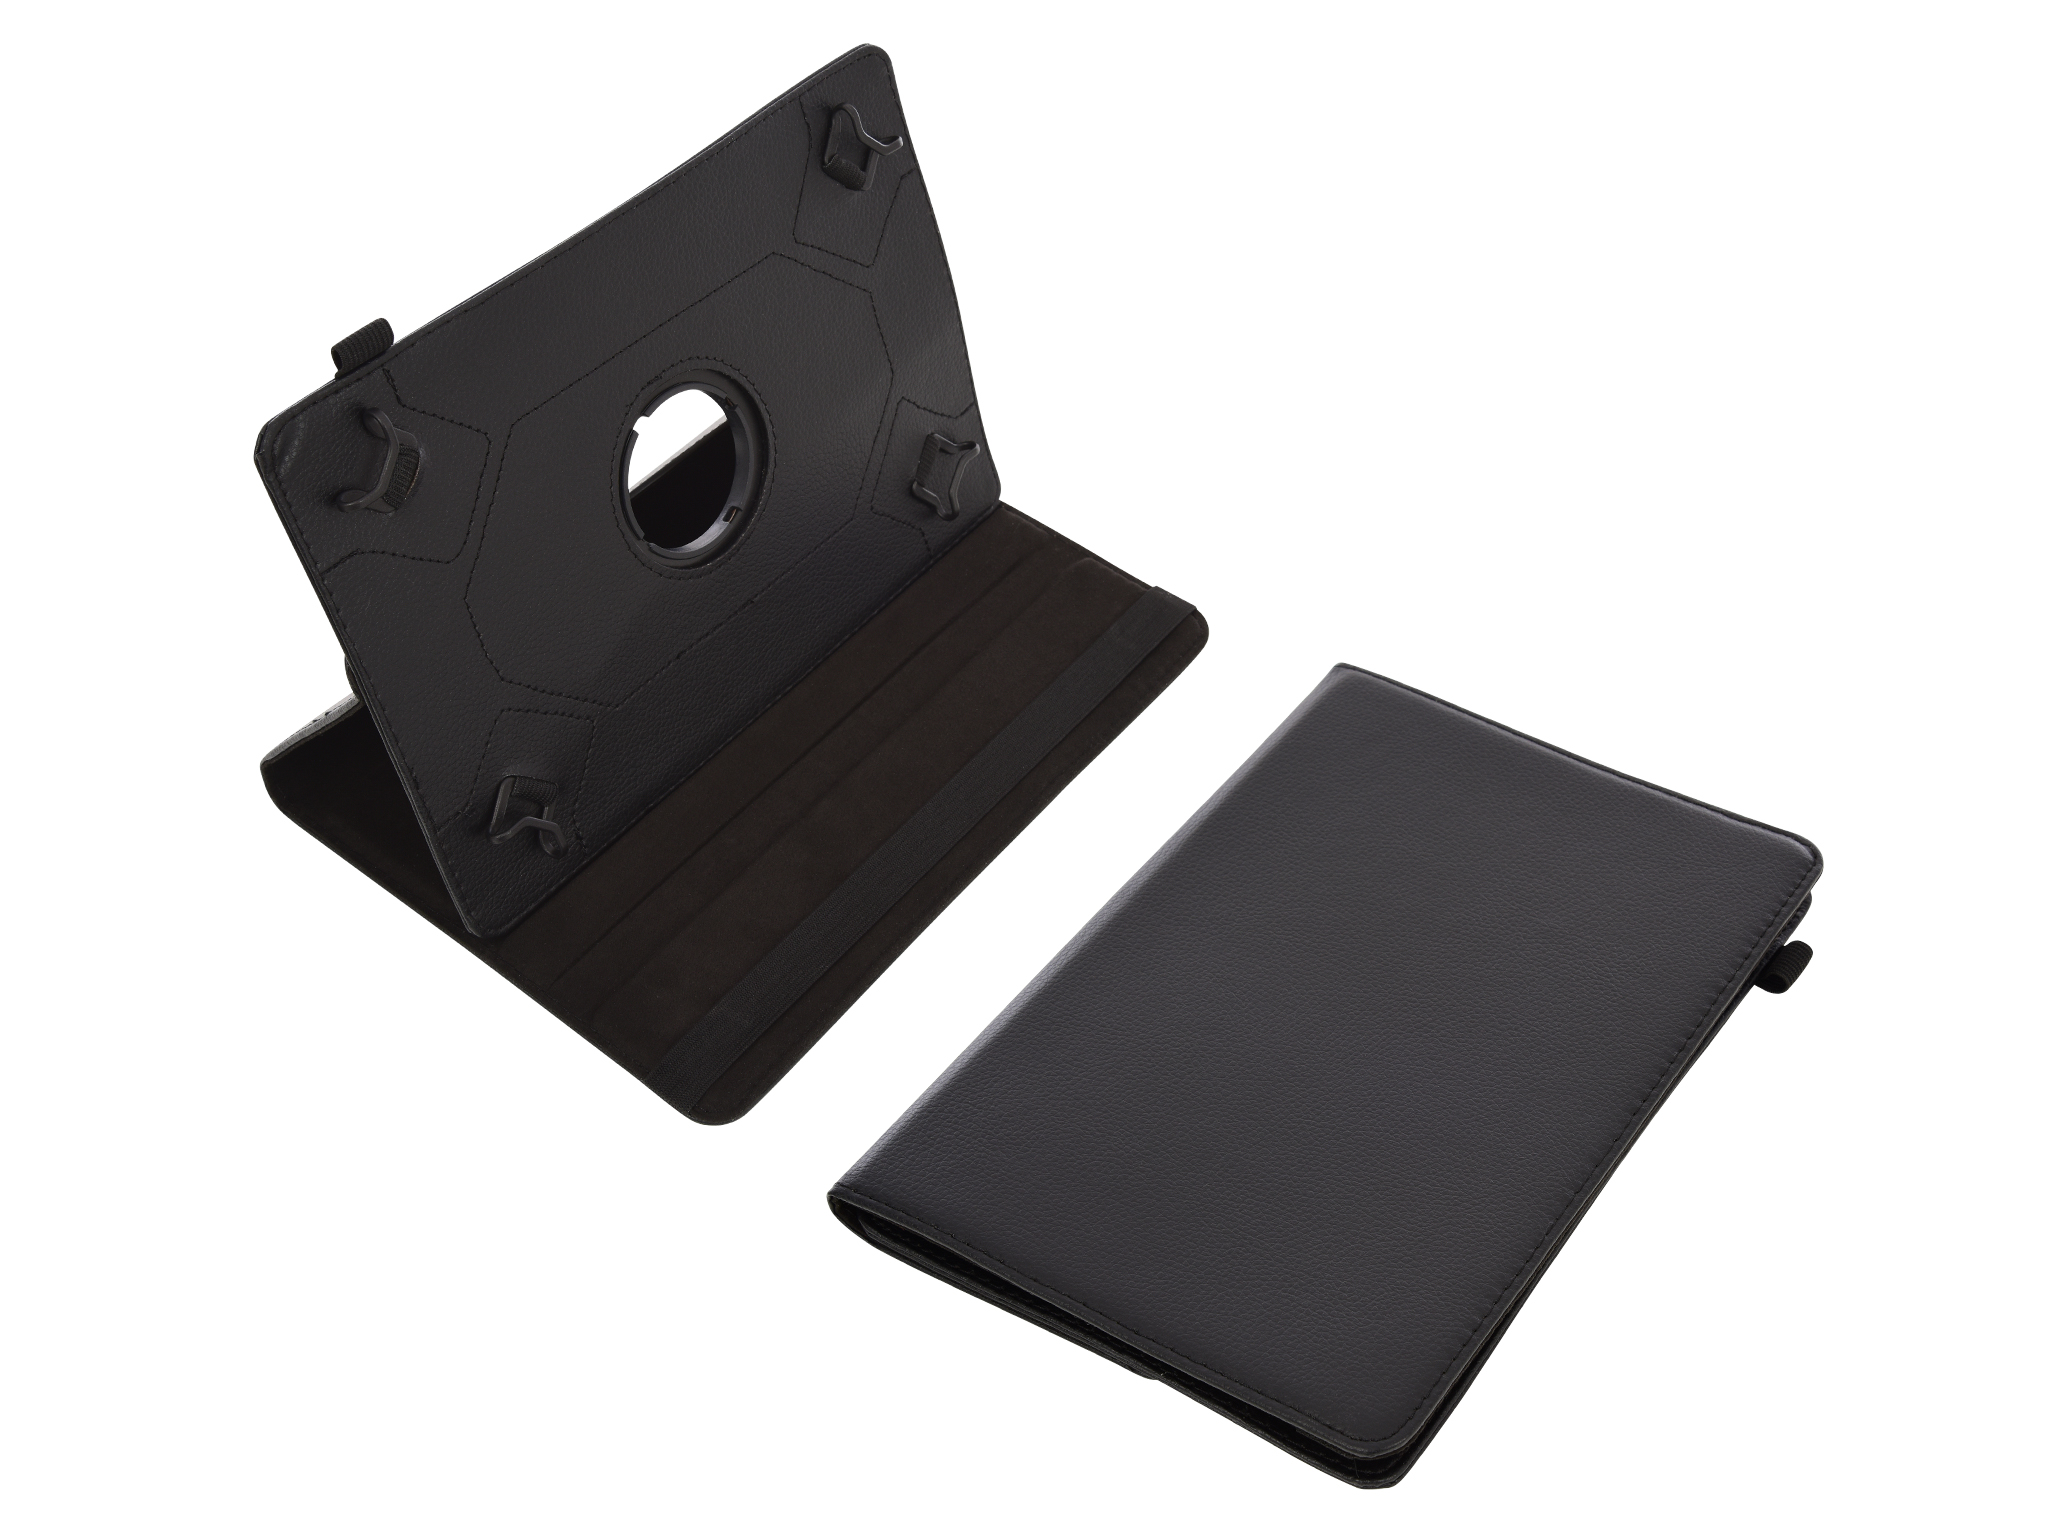 iPad 2017/2018 9.7'' Rotating Cover Stand, Black